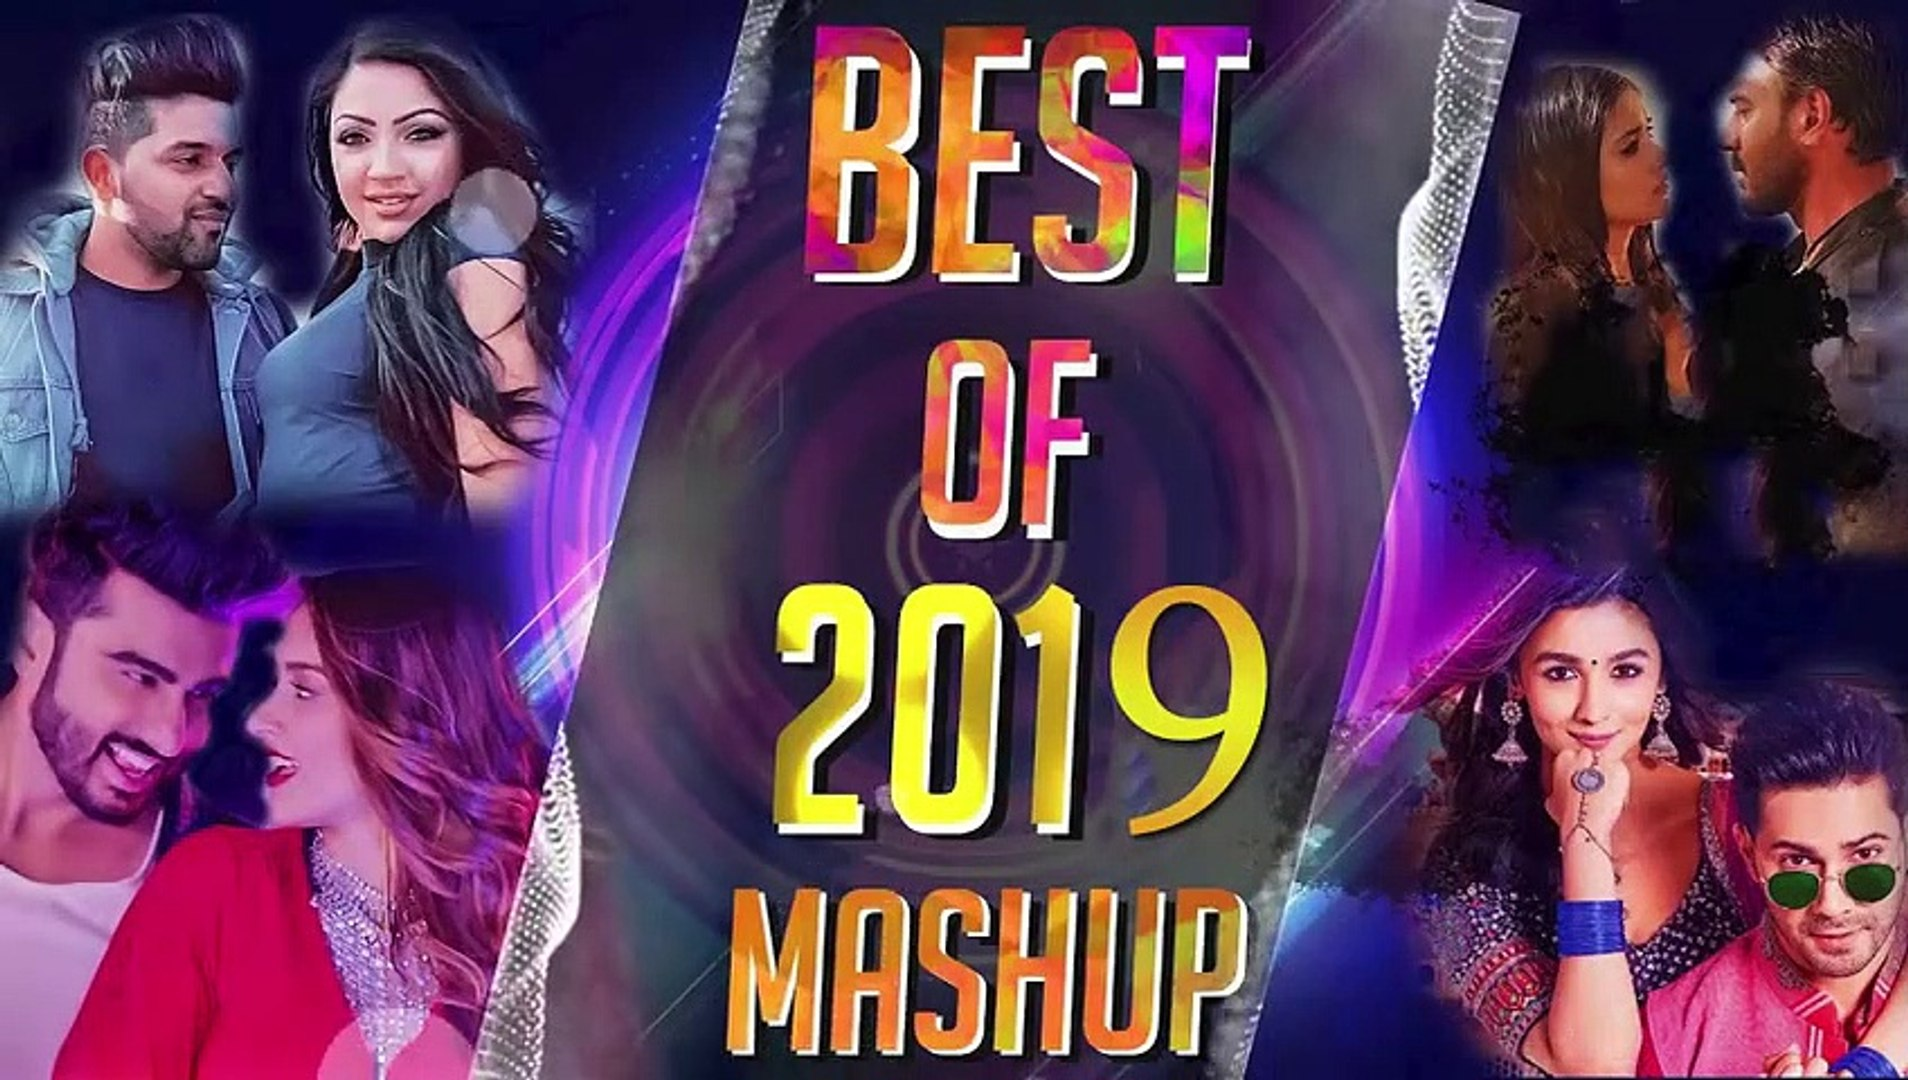 Love Mashup 2019 Hindi Romantic Songs Best Of Bollywood Dance Songs 2019 Nonstop Dj Party Mix 480p Video Dailymotion Hindi songs mashup free downloads. love mashup 2019 hindi romantic songs best of bollywood dance songs 2019 nonstop dj party mix 480p